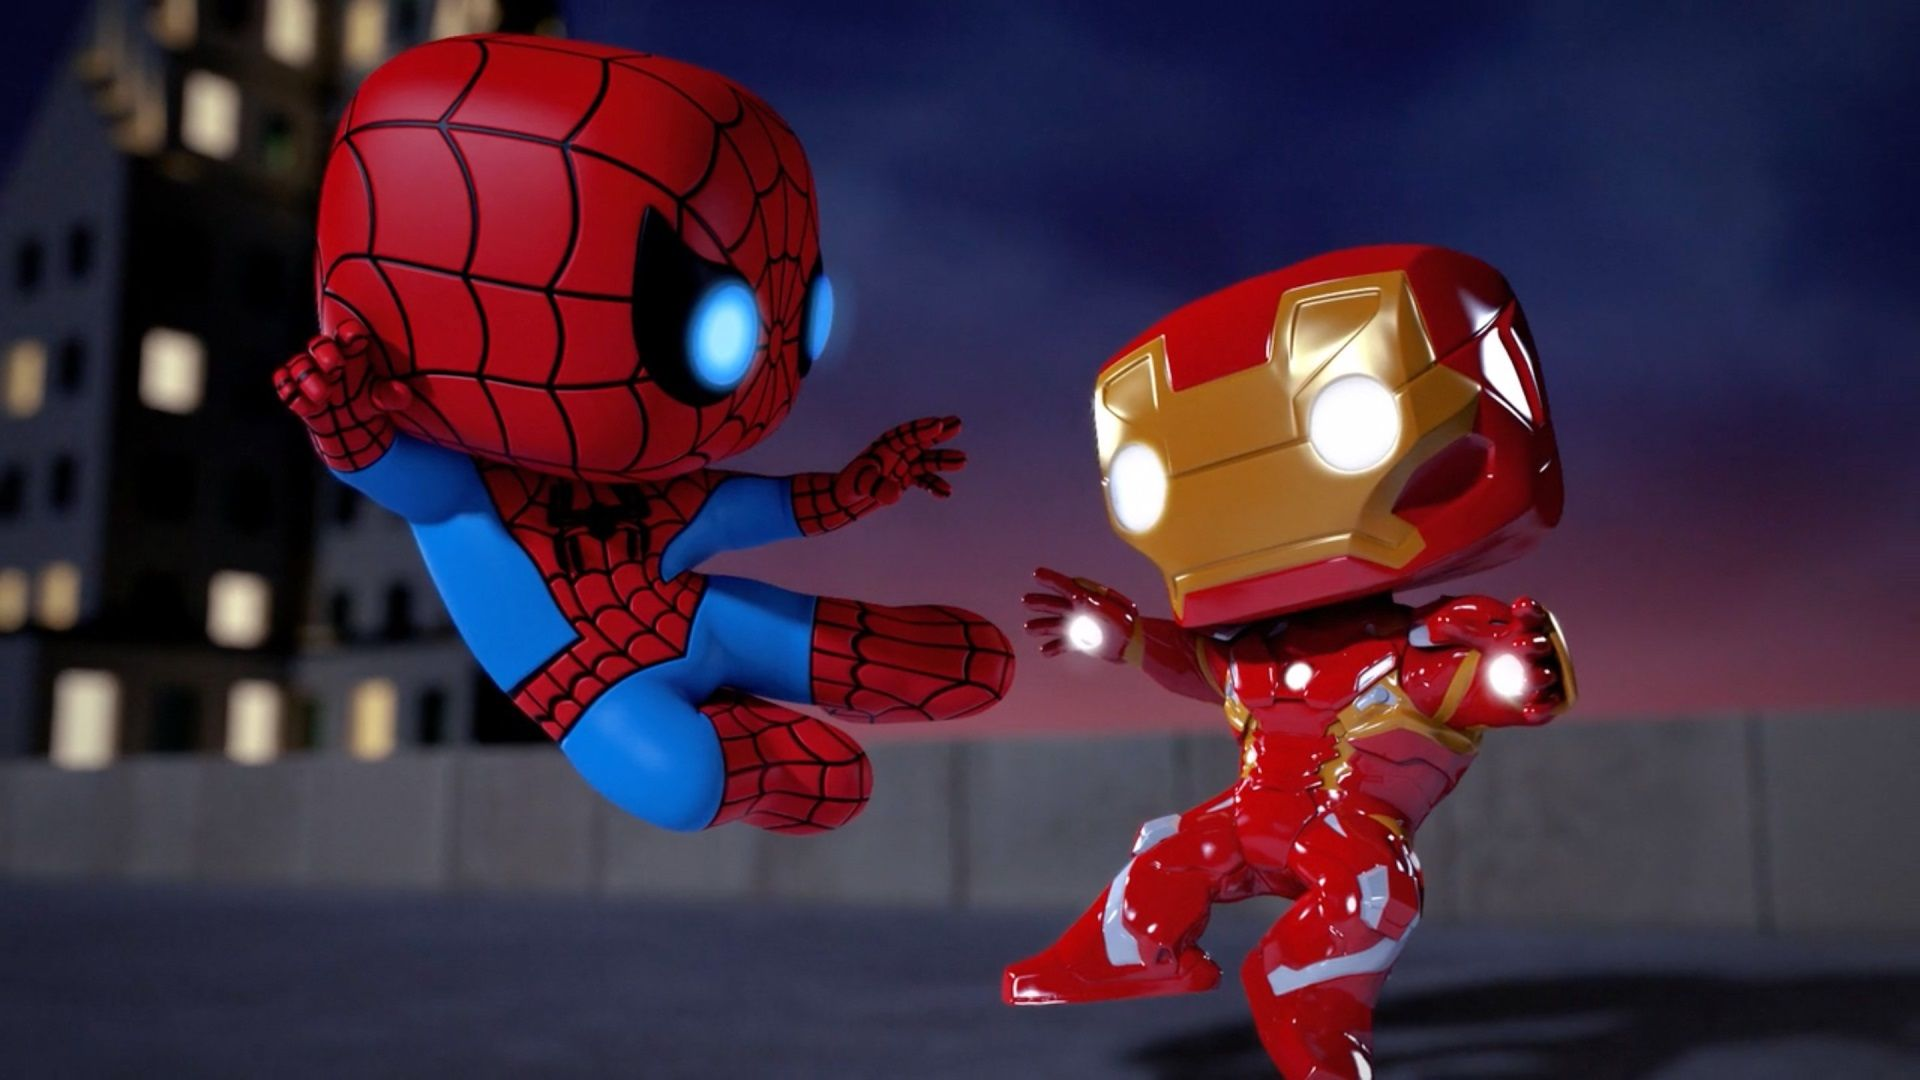 Amazing Wallpaper High Resolution Iron Man - 373ddaf2b3ee6a1e287deec8f0f11386  Perfect Image Reference_725188.jpg